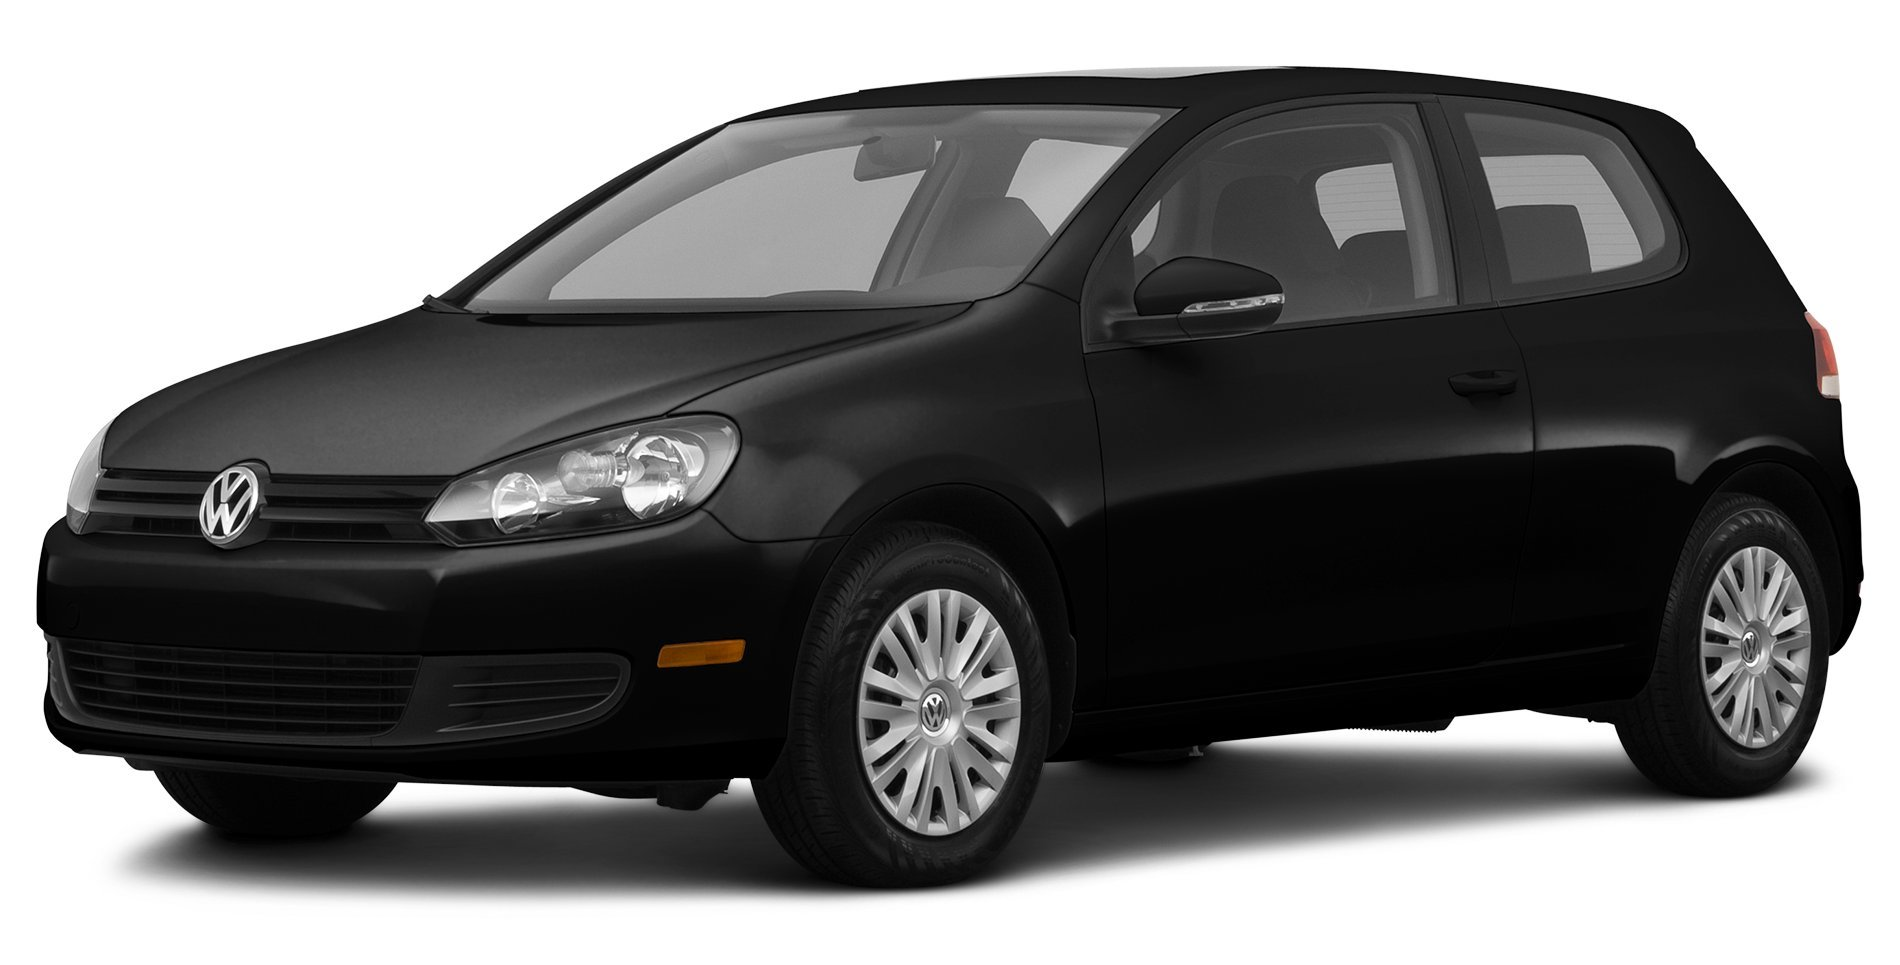 2011 Volkswagen Golf Reviews Images And Specs Vehicles Fuse Box For Honda Civic 15 94 Hp Hatchback 3 Doors 1995 2 Door Automatic Transmission